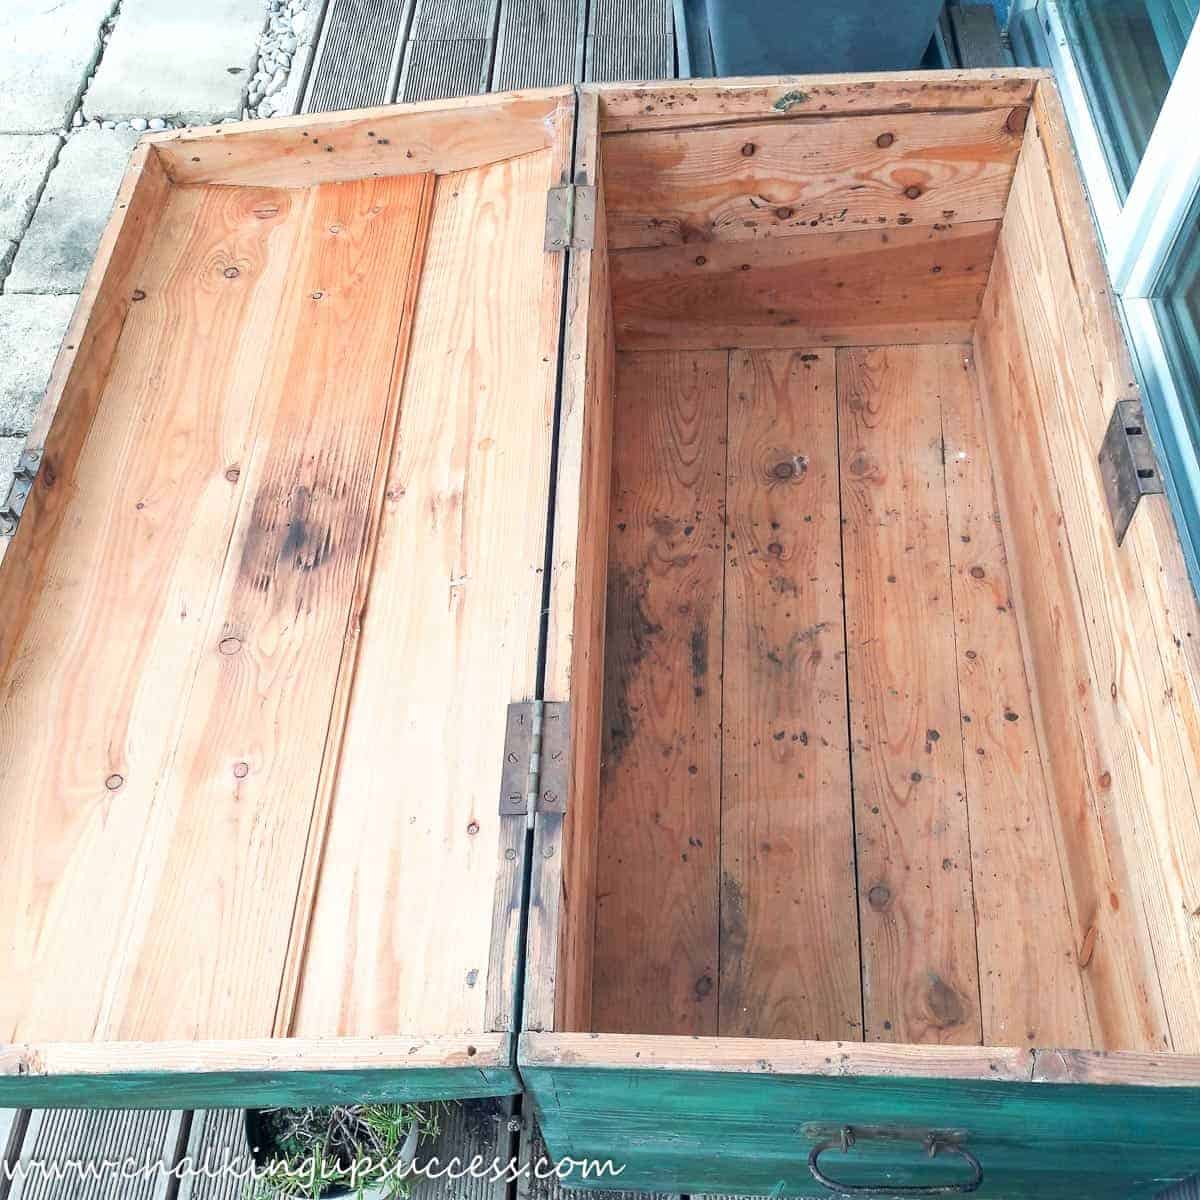 A 'before' shot of the wooden trunk with the lid wide open. Inside the trunk is dirty, has nails sticking out and lots of patches of old glue.